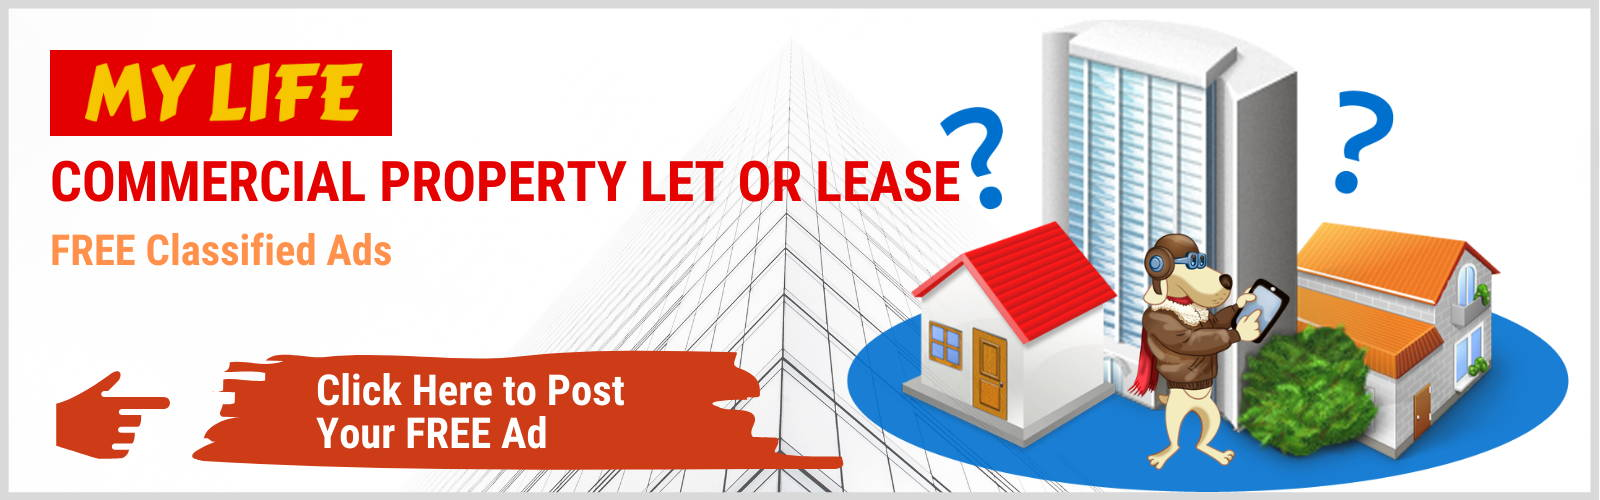 Commercial Property Let or Lease on My Life Free Classified Ads